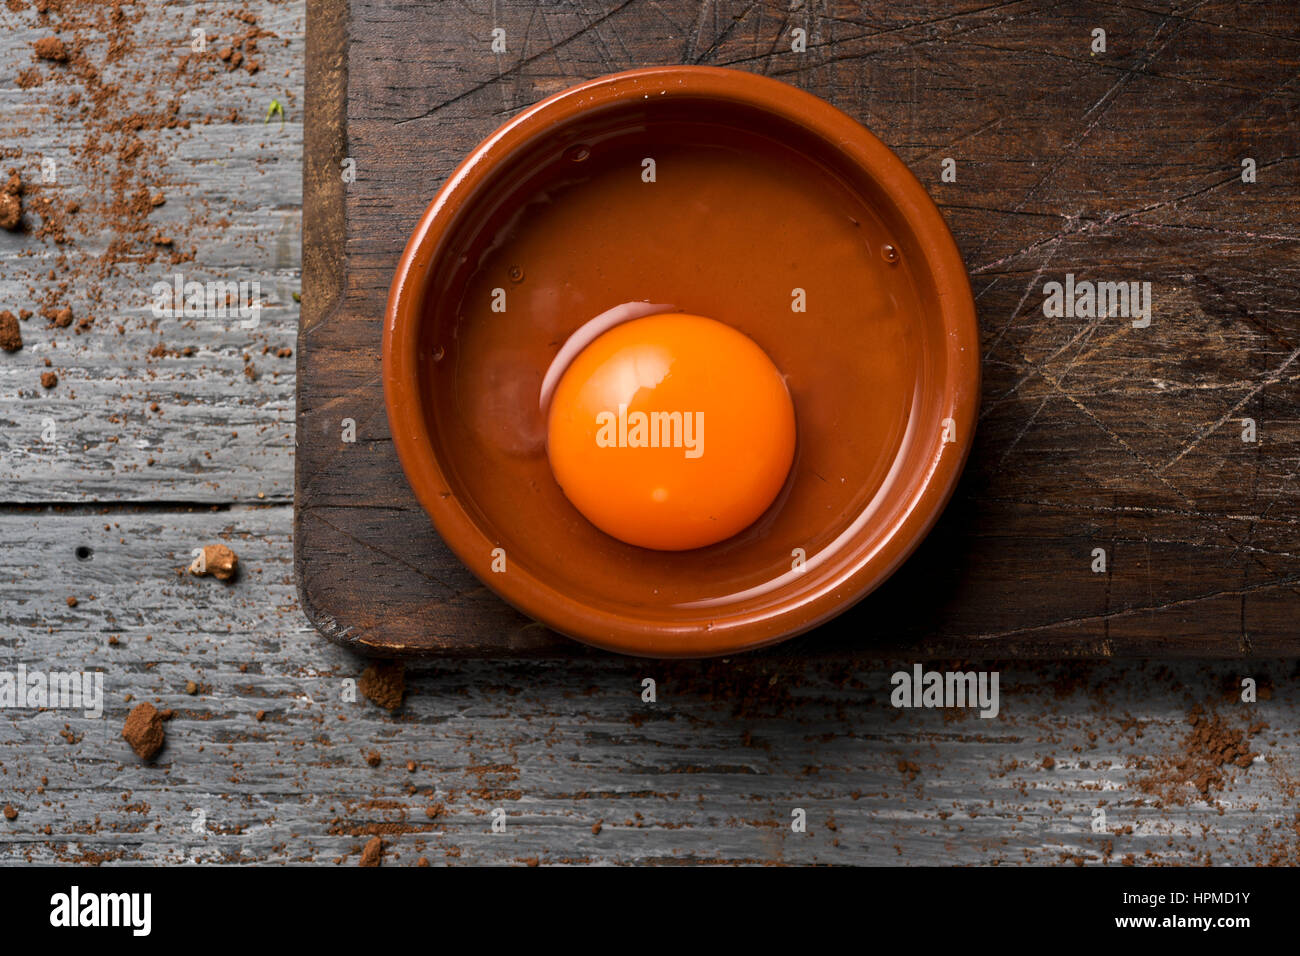 high-angle shot of an earthenware plate with a cracked chicken egg on a rustic wooden table - Stock Image